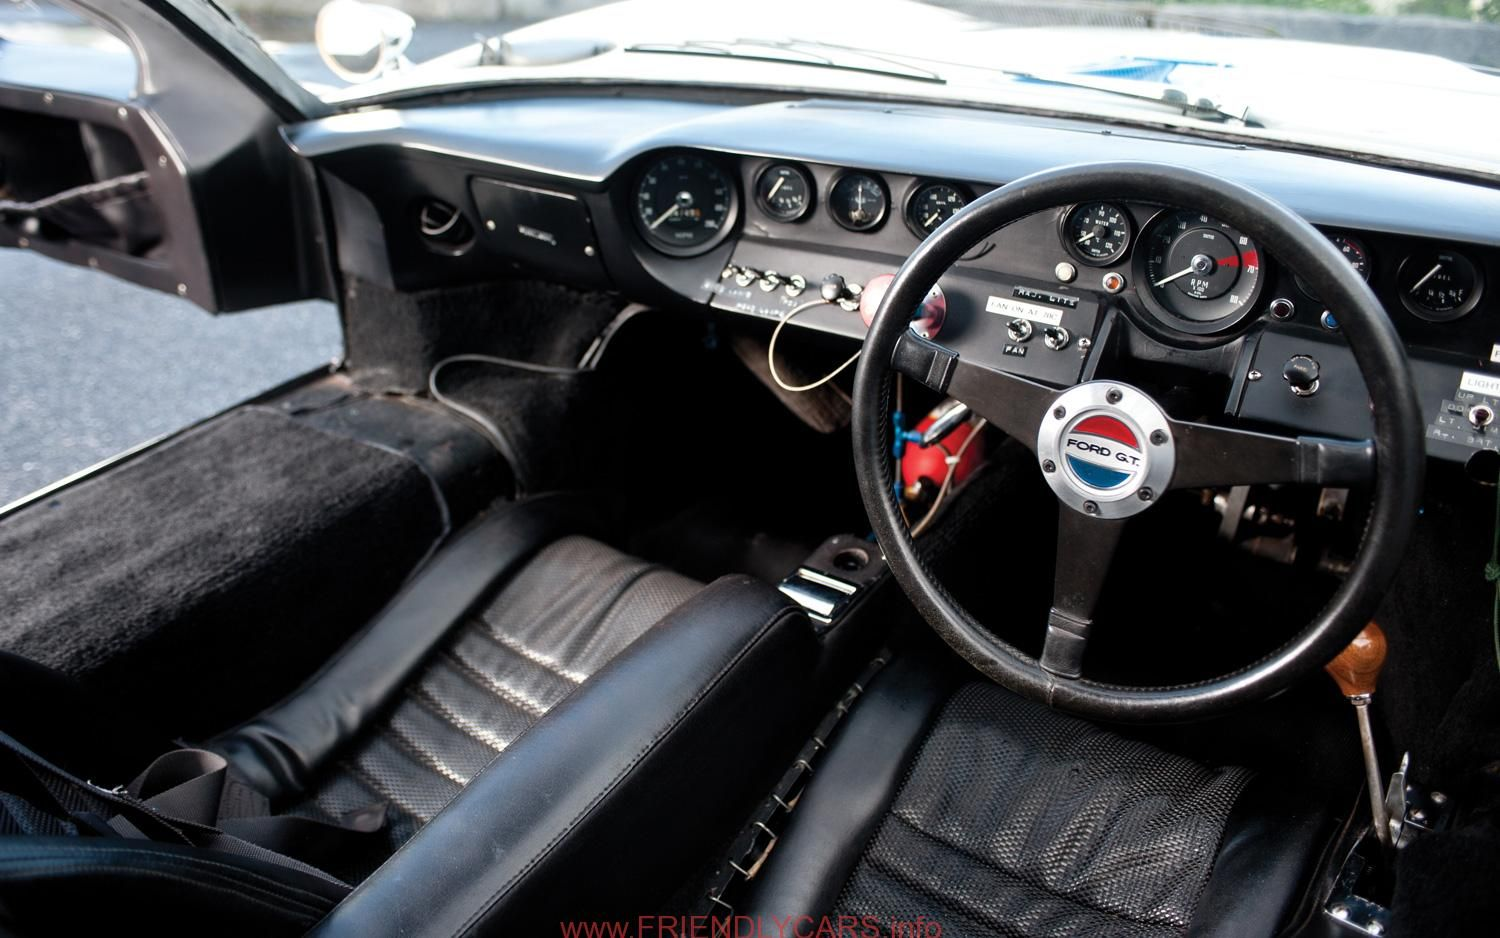 Ford Gt40 Interior Car Images Hd Alifiah Sites Ford Gt40 Ford Gt Ford Racing